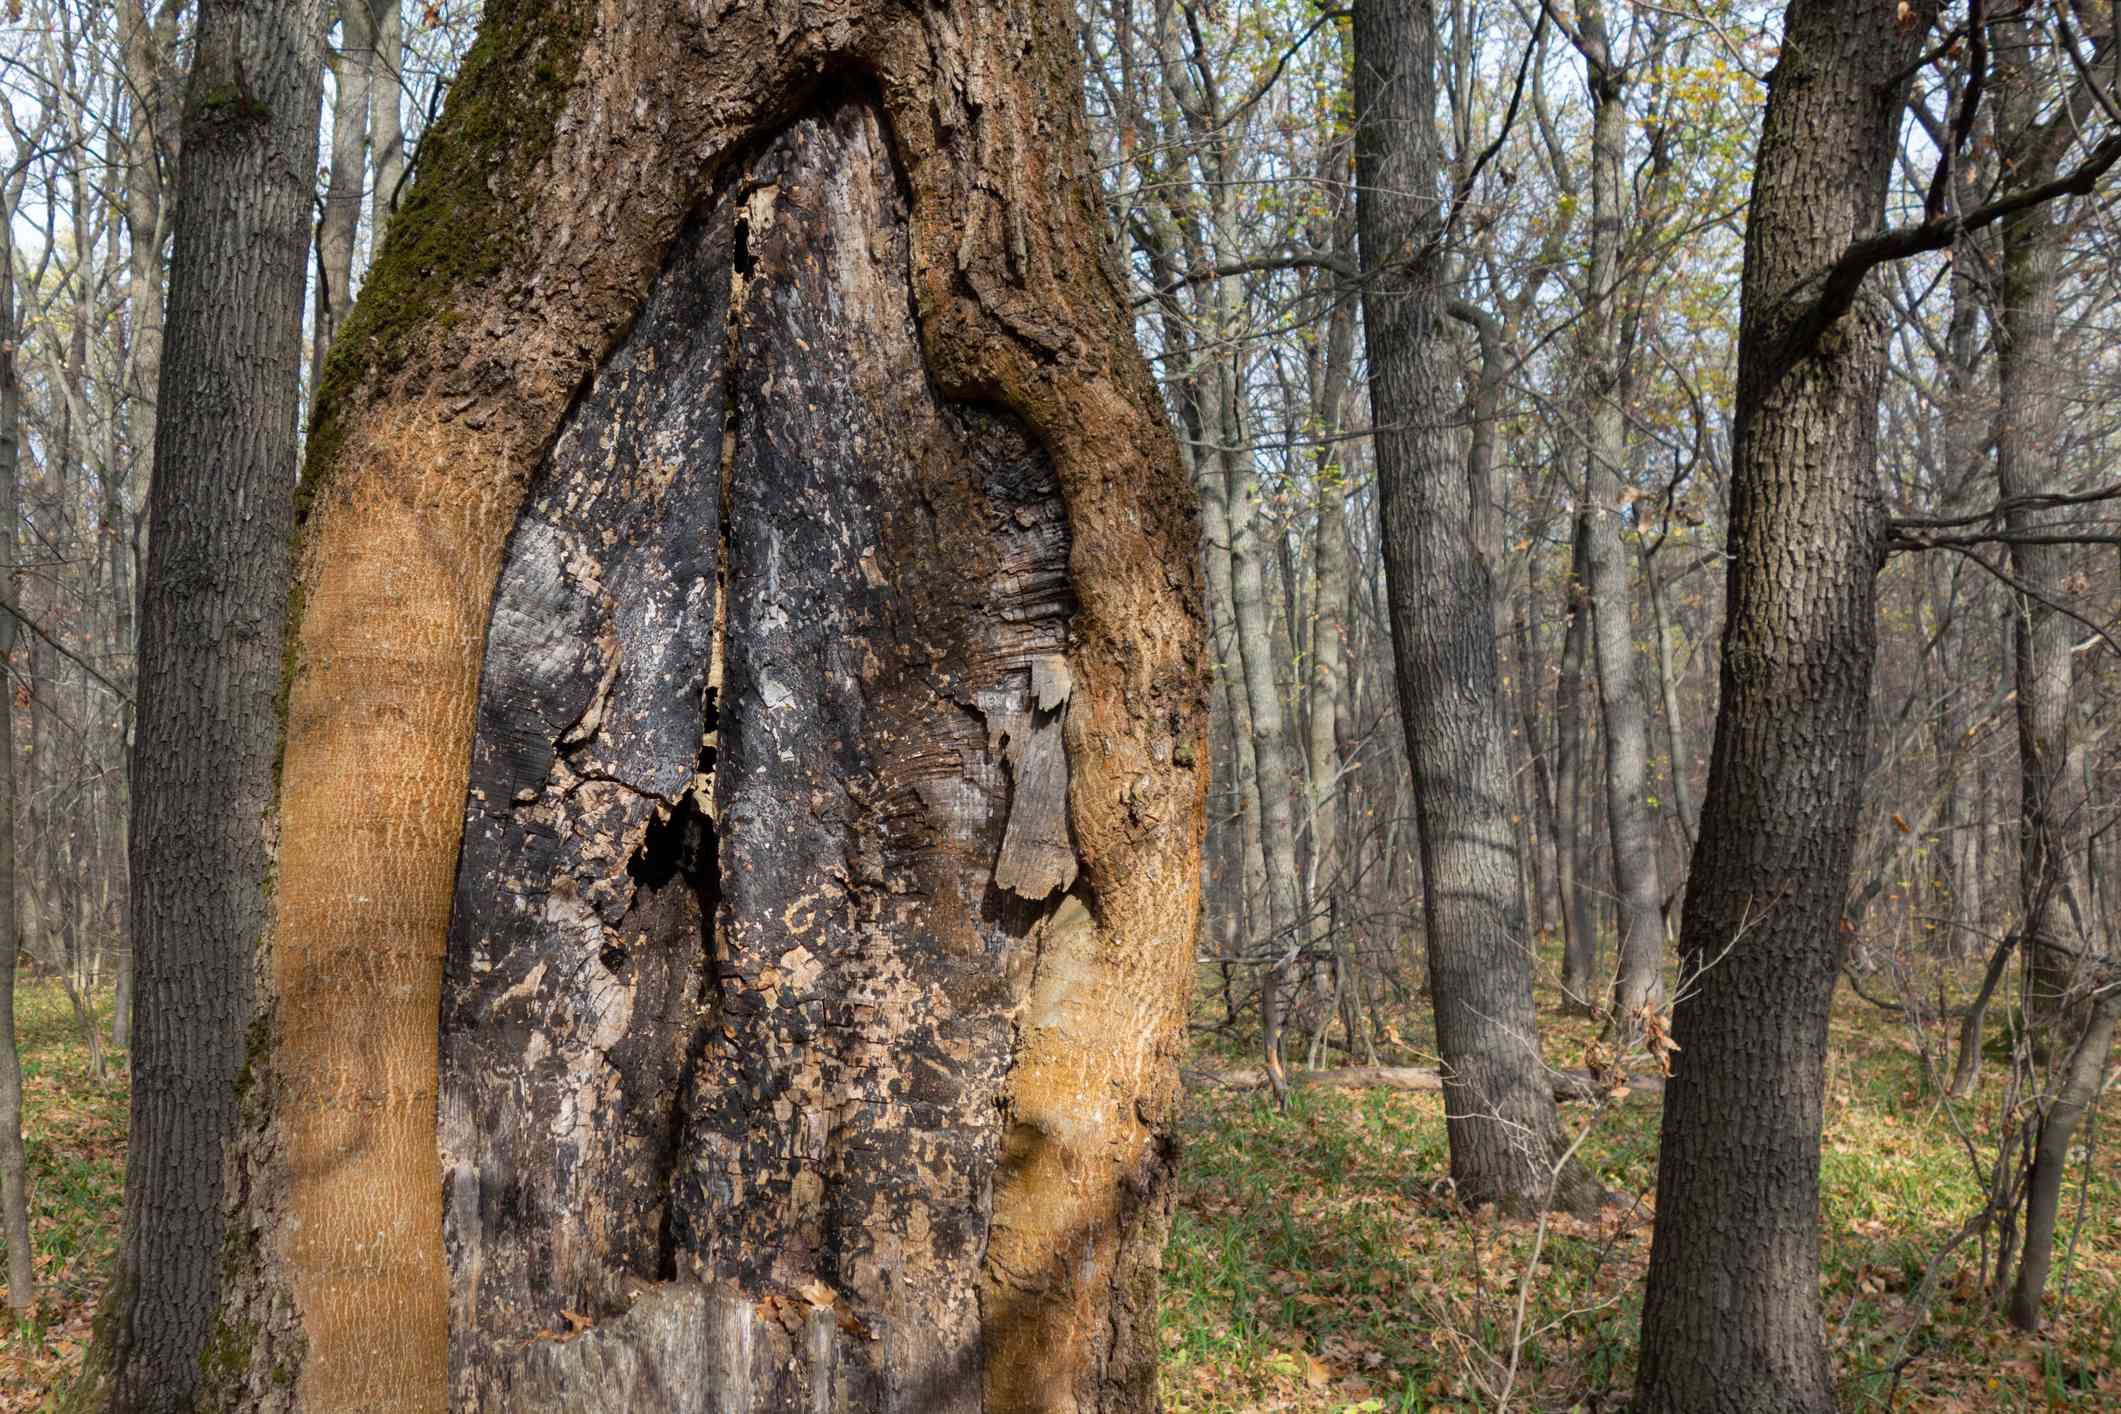 Canker on a tree trunk in a forest.